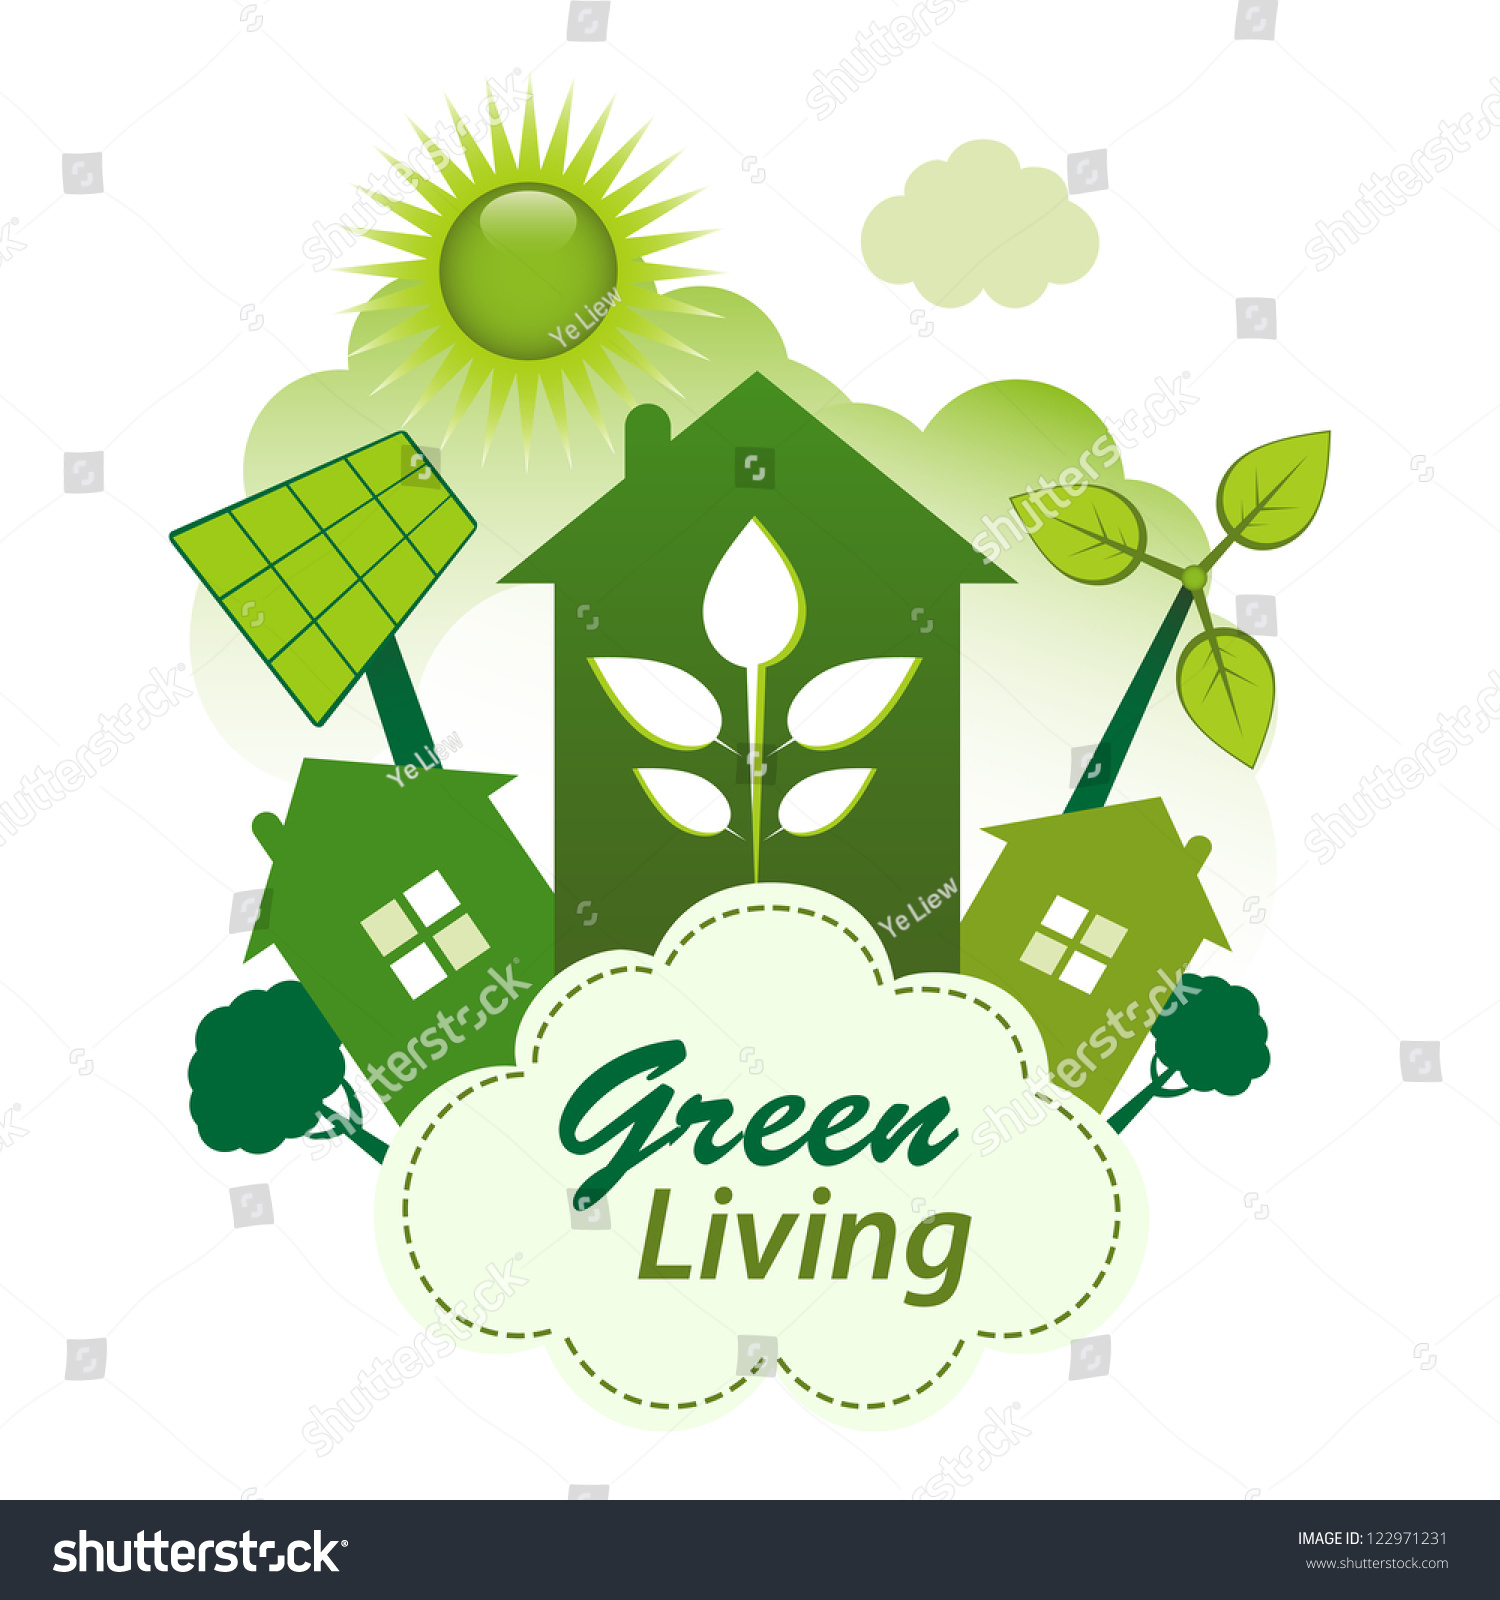 Green Living Concept Green Housing Community On A Cloud